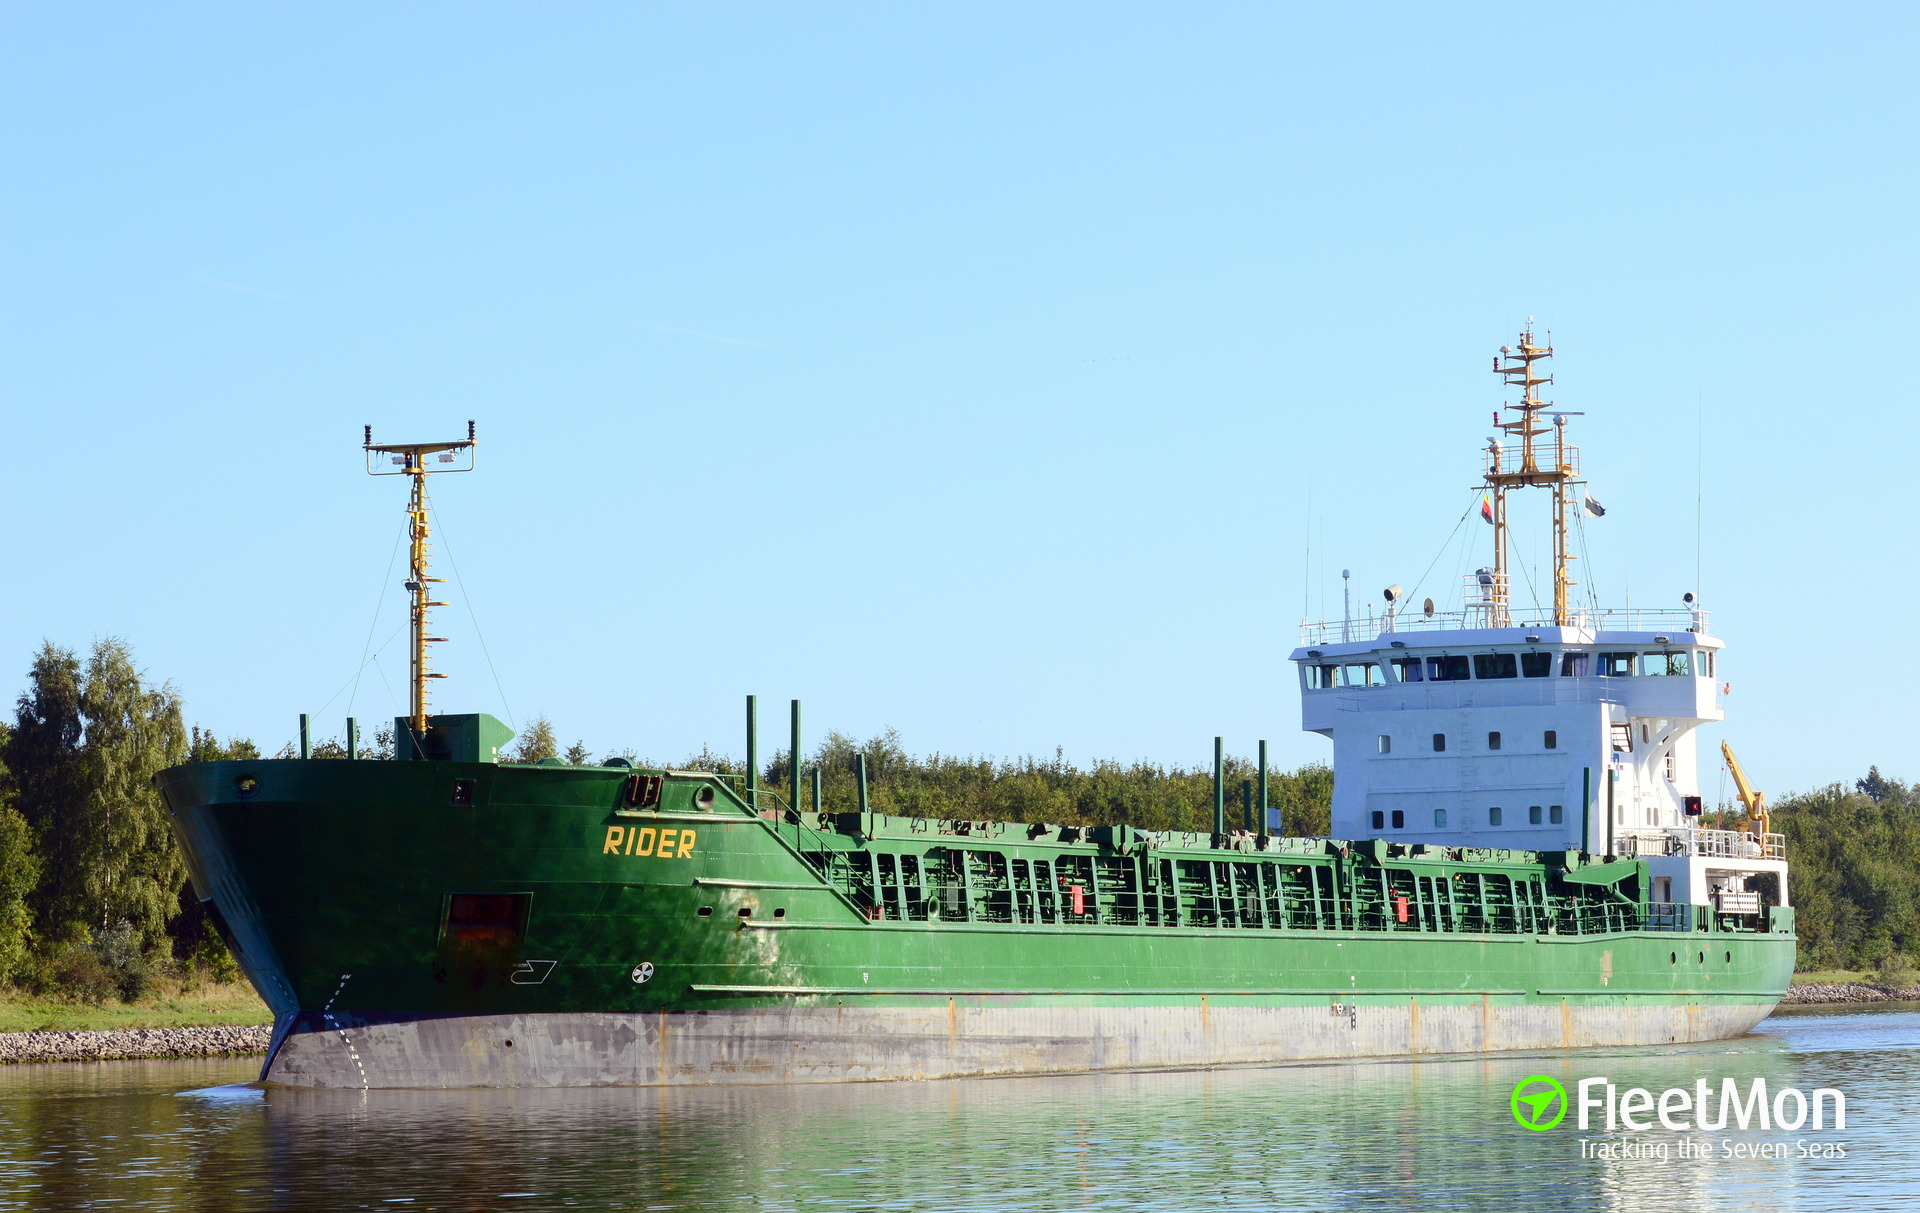 General cargo vessel Rider towed to Brunsbuettel